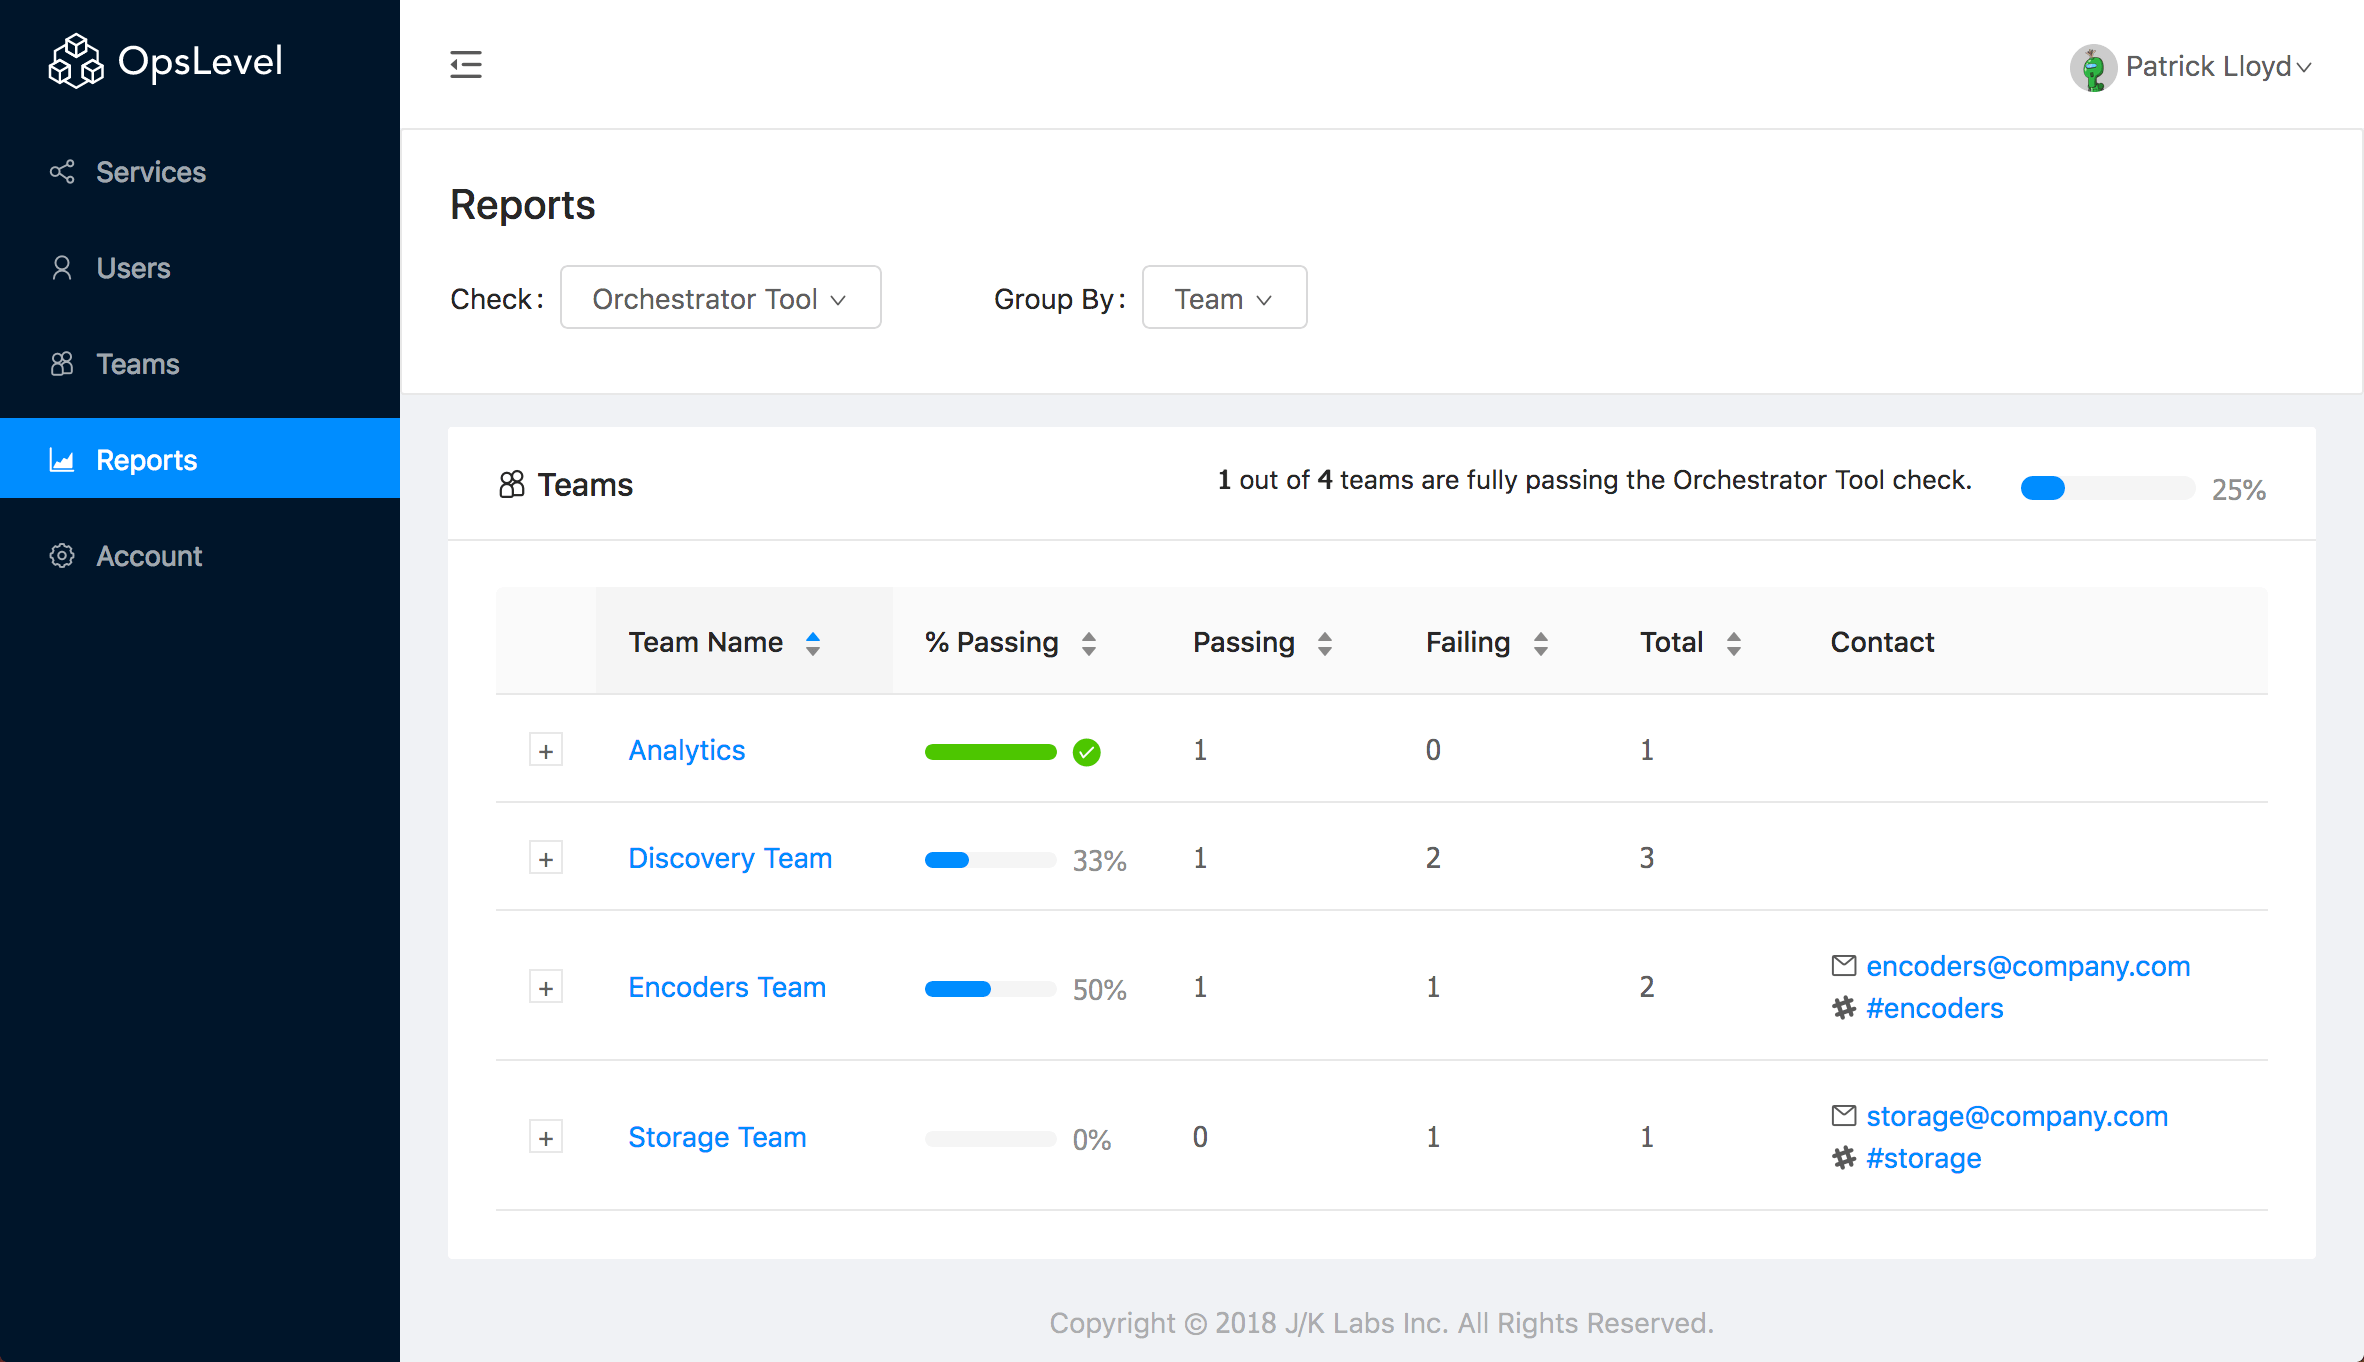 Reports By Team